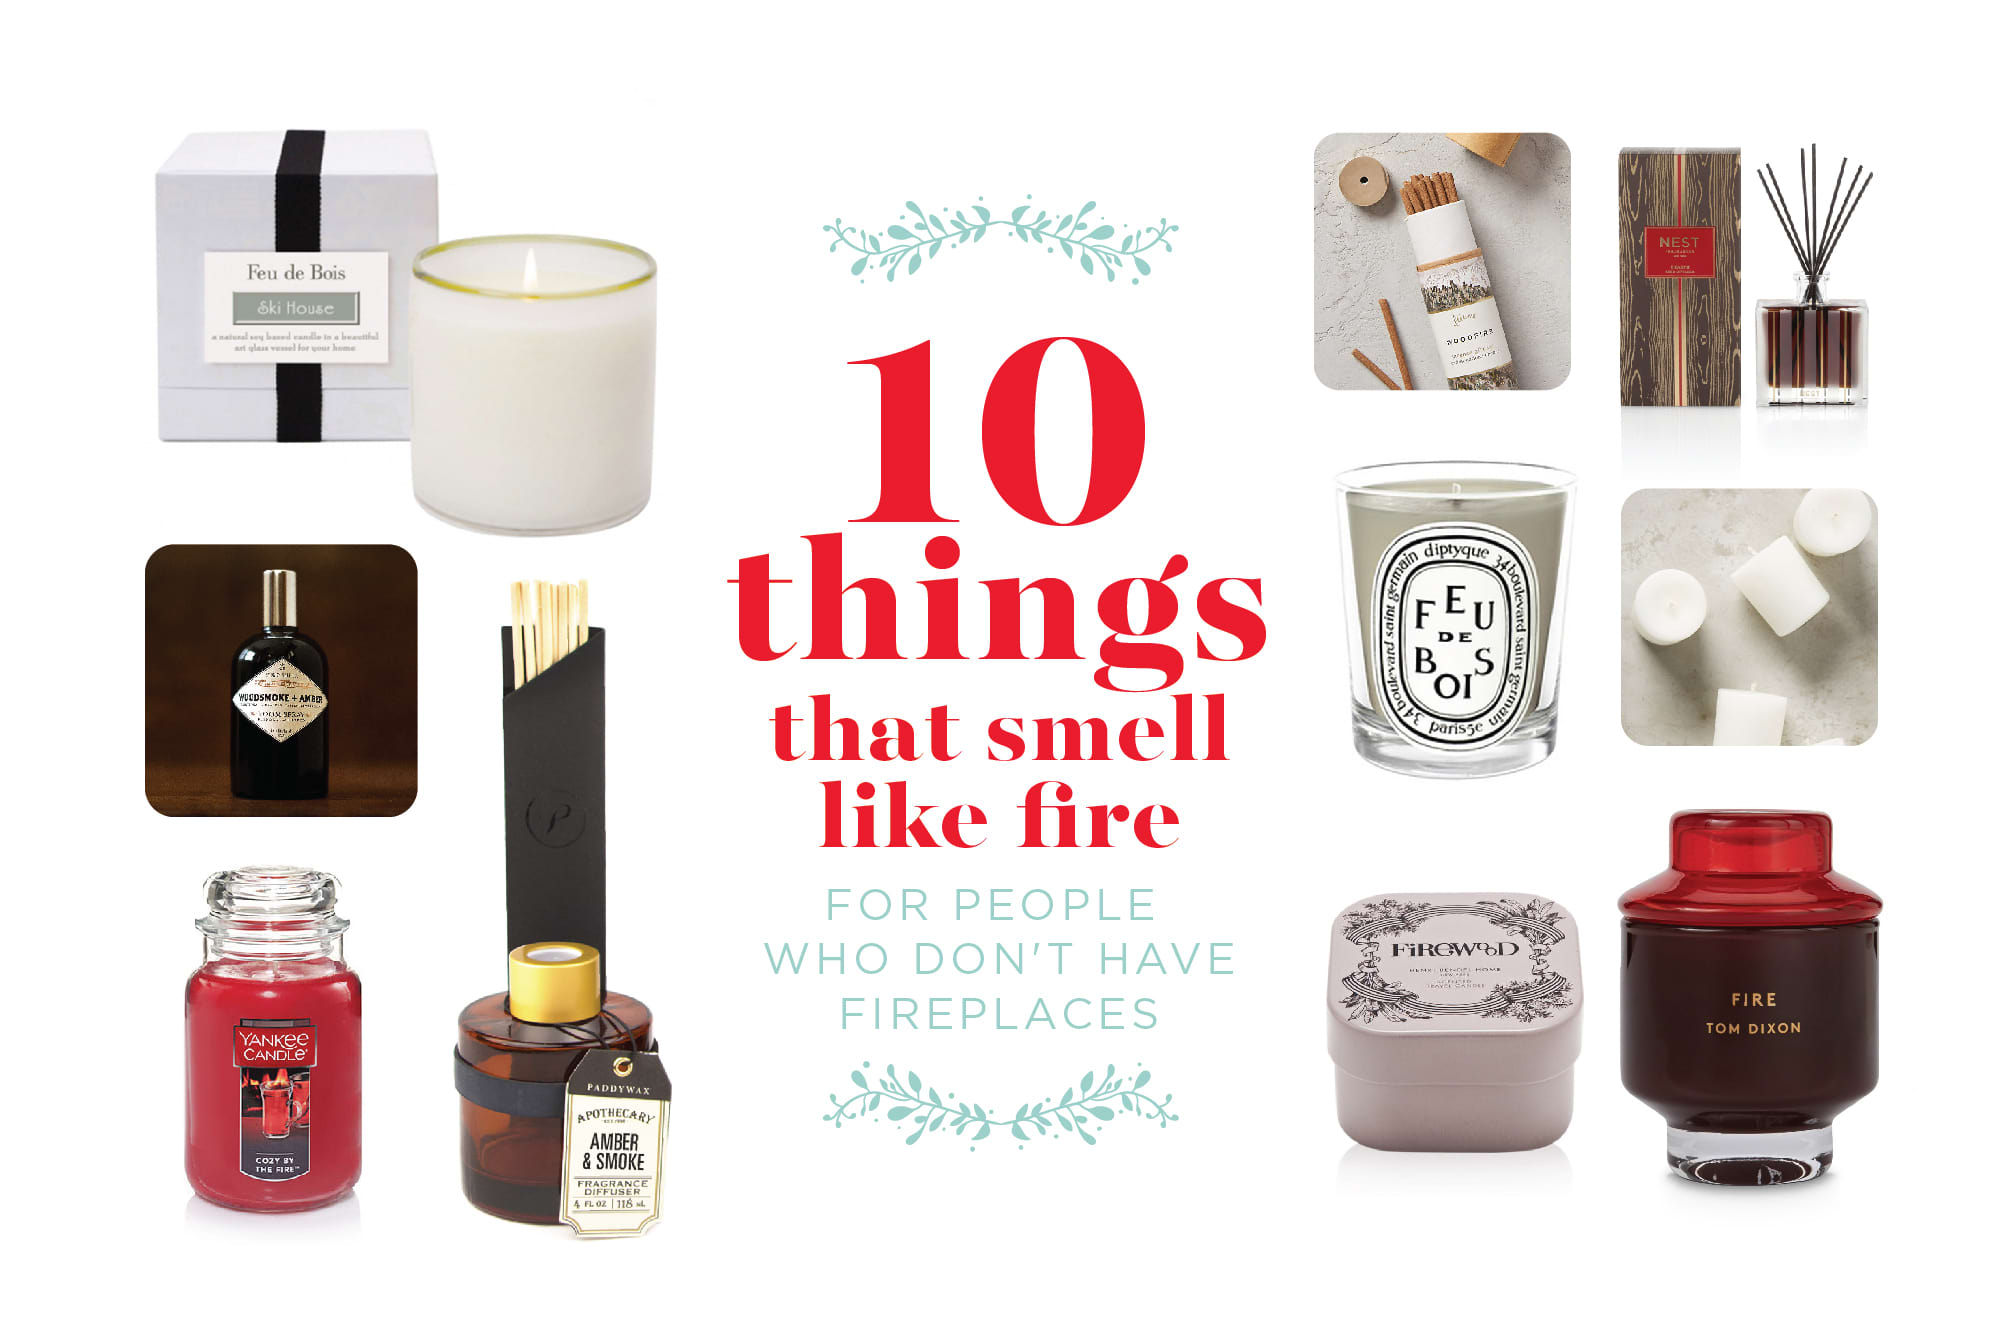 10 Things That Smell Like Fire for People Who Don't Have